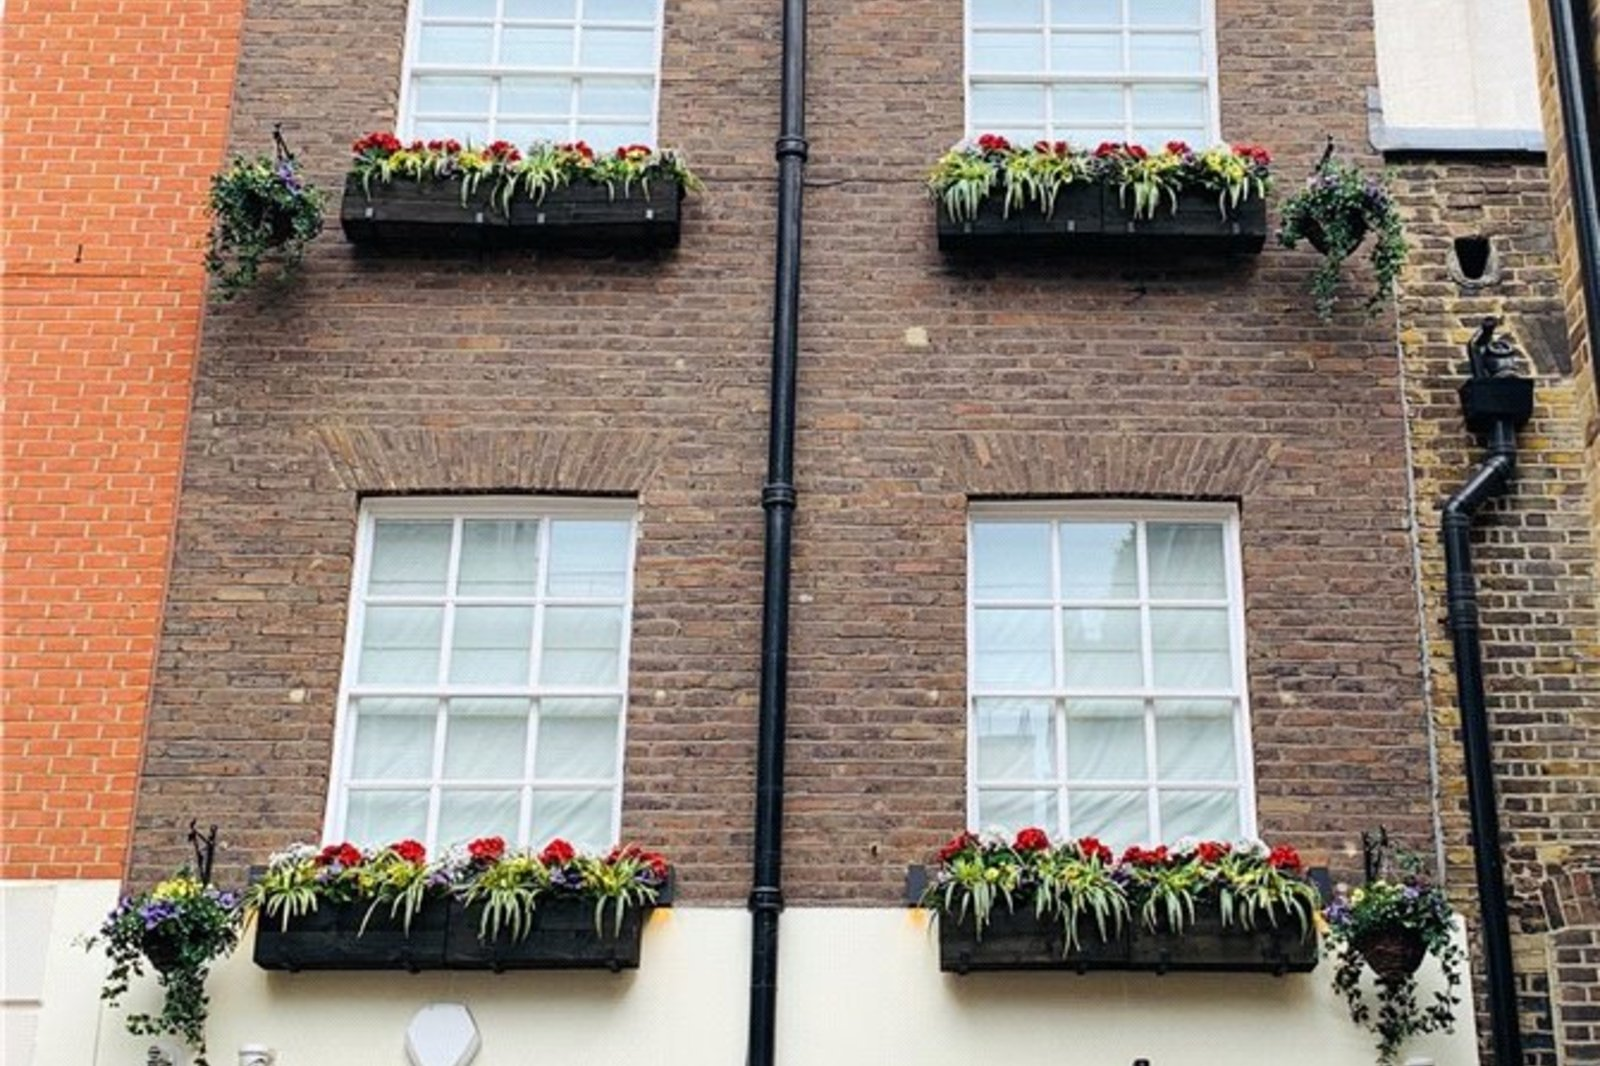 Brick Street, Mayfair, London, W1J